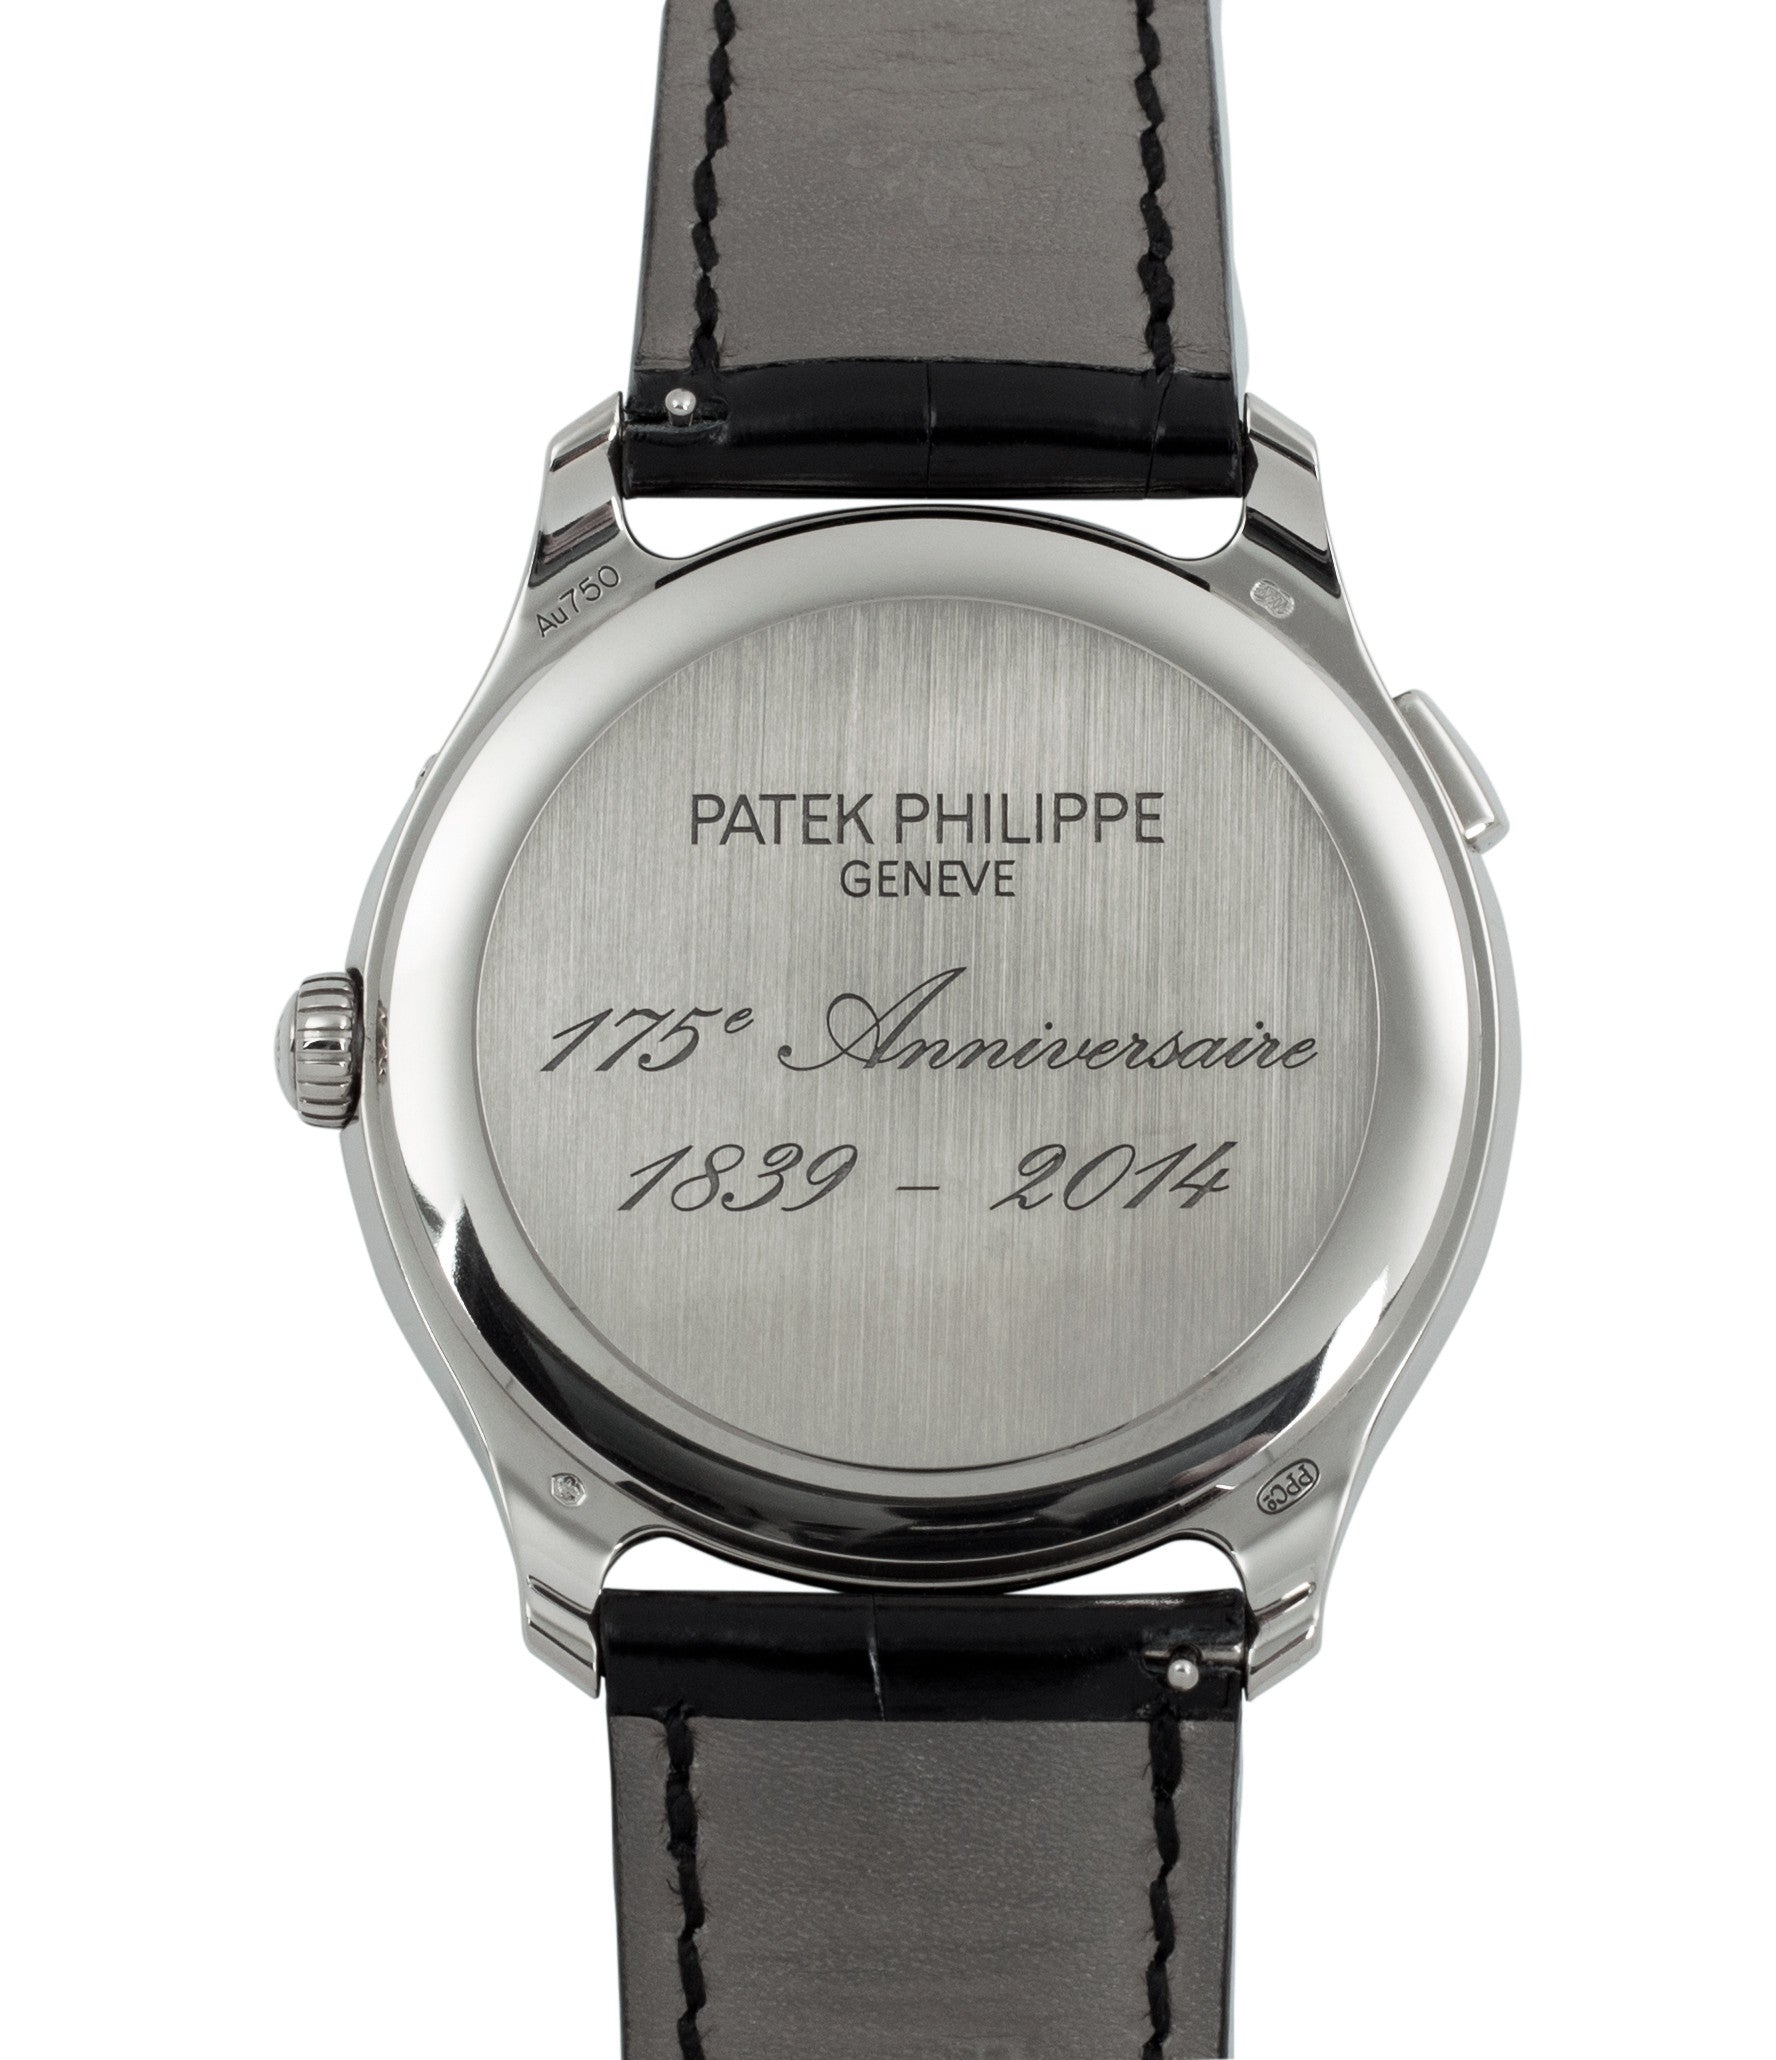 5575G Patek Philippe Worldtimer Moonphase 175th Anniversary white gold preowned dress watch for sale online at A Collected Man London rare watch specialist